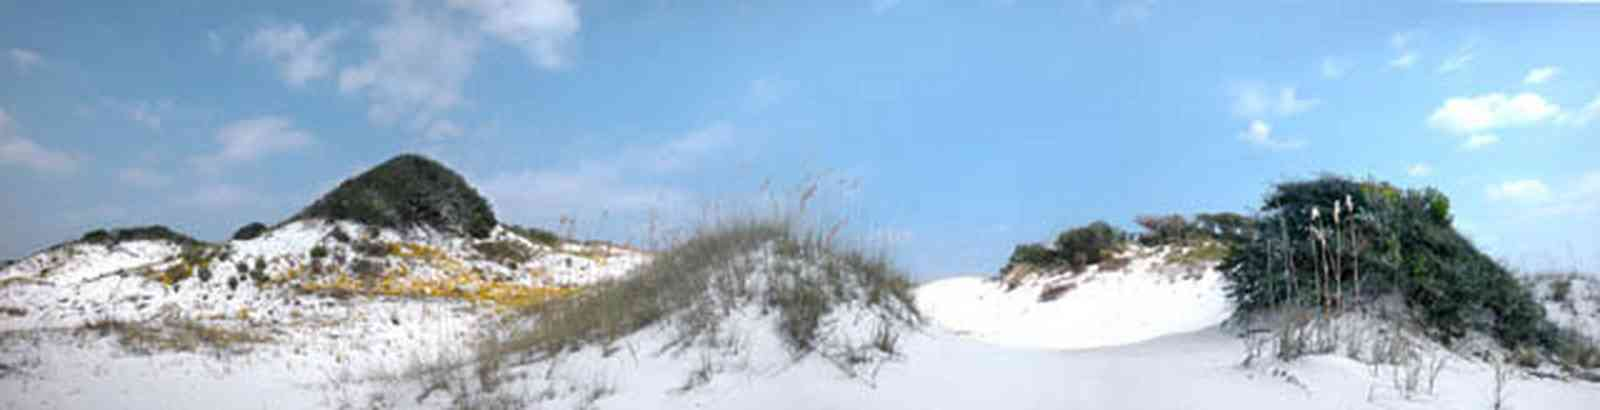 Gulf-Islands-National-Seashore:-Dunes:-Parking-Lot-9_01.jpg:  dunes, sea oats, oak trees, wind blown, wildflowers, scudding clouds, weather front, sand dunes, ground cover, white sand, crystal sand,